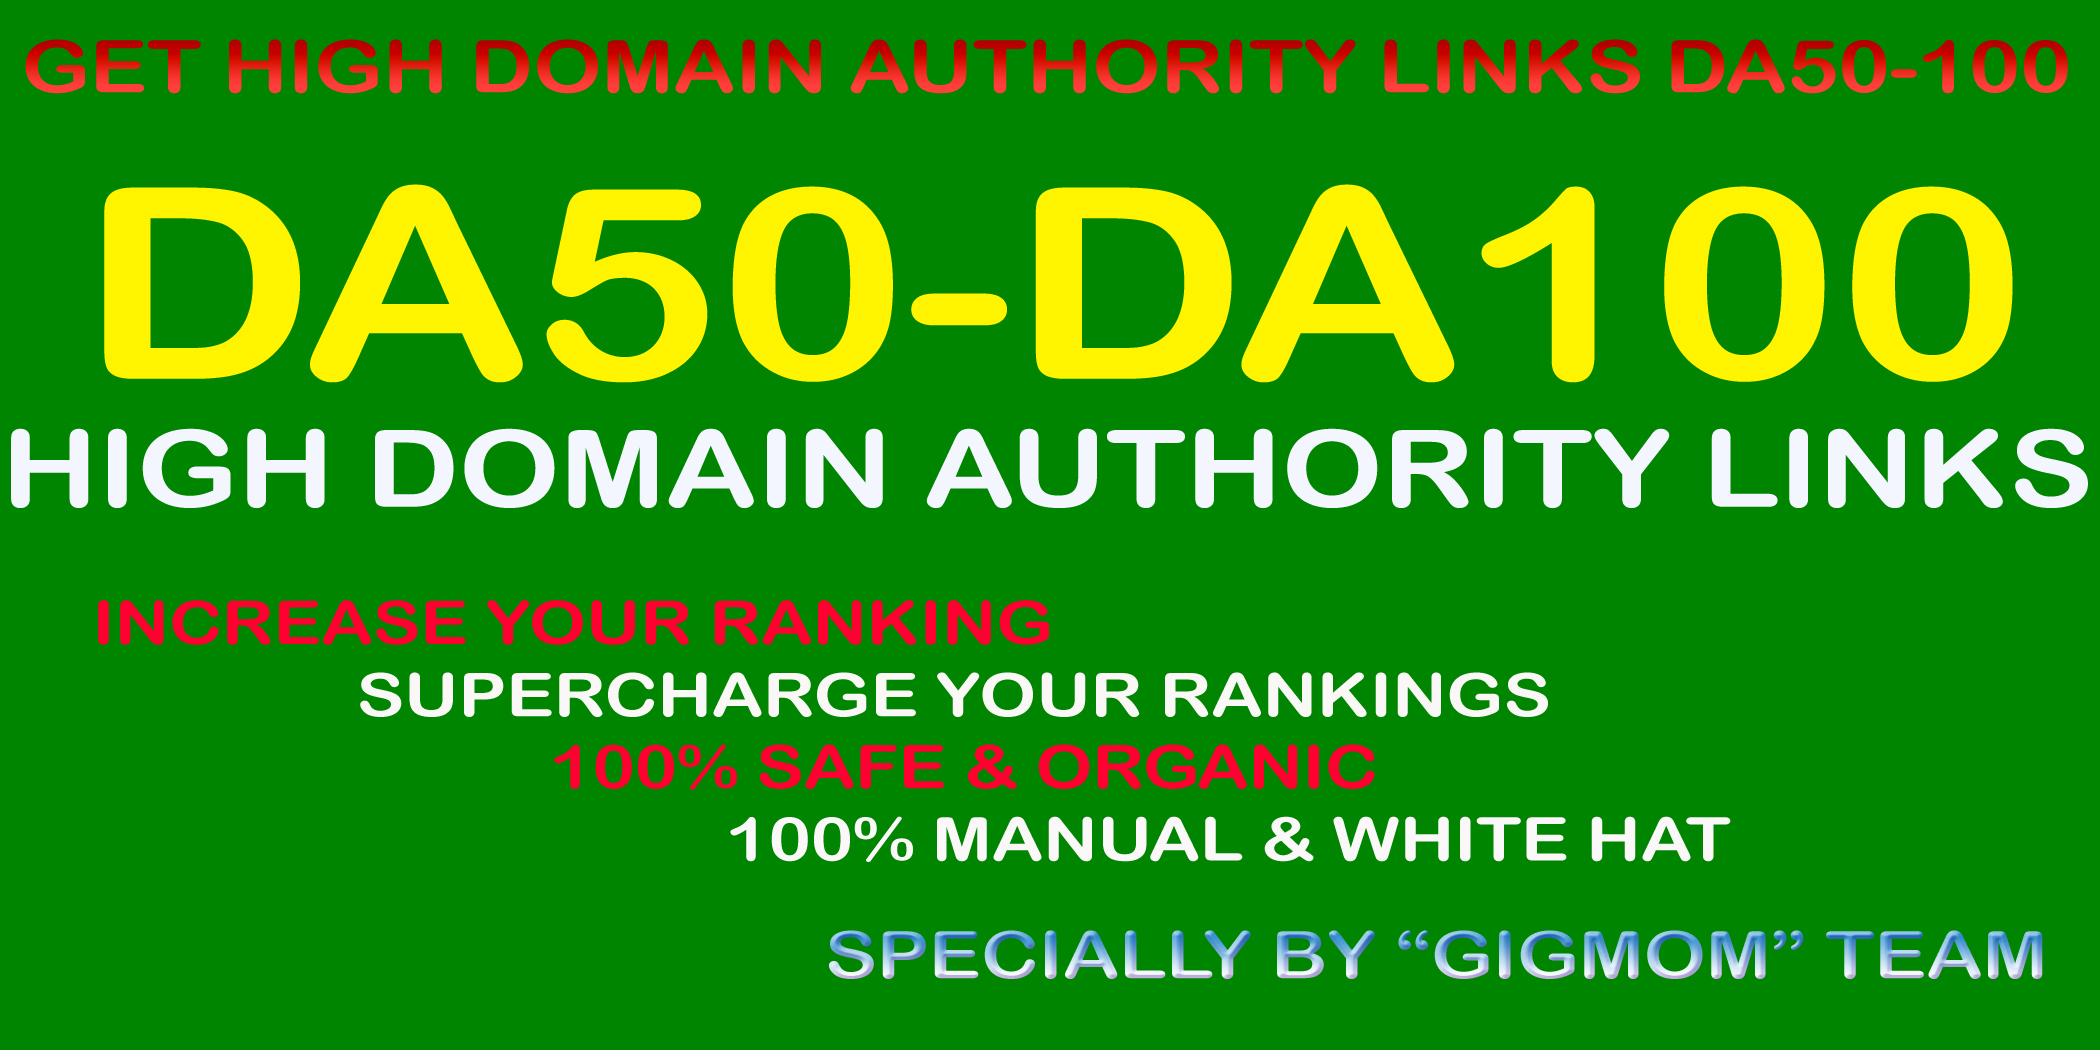 Manually 100 Unique High Authority Links DA50-100 to Rank Higher